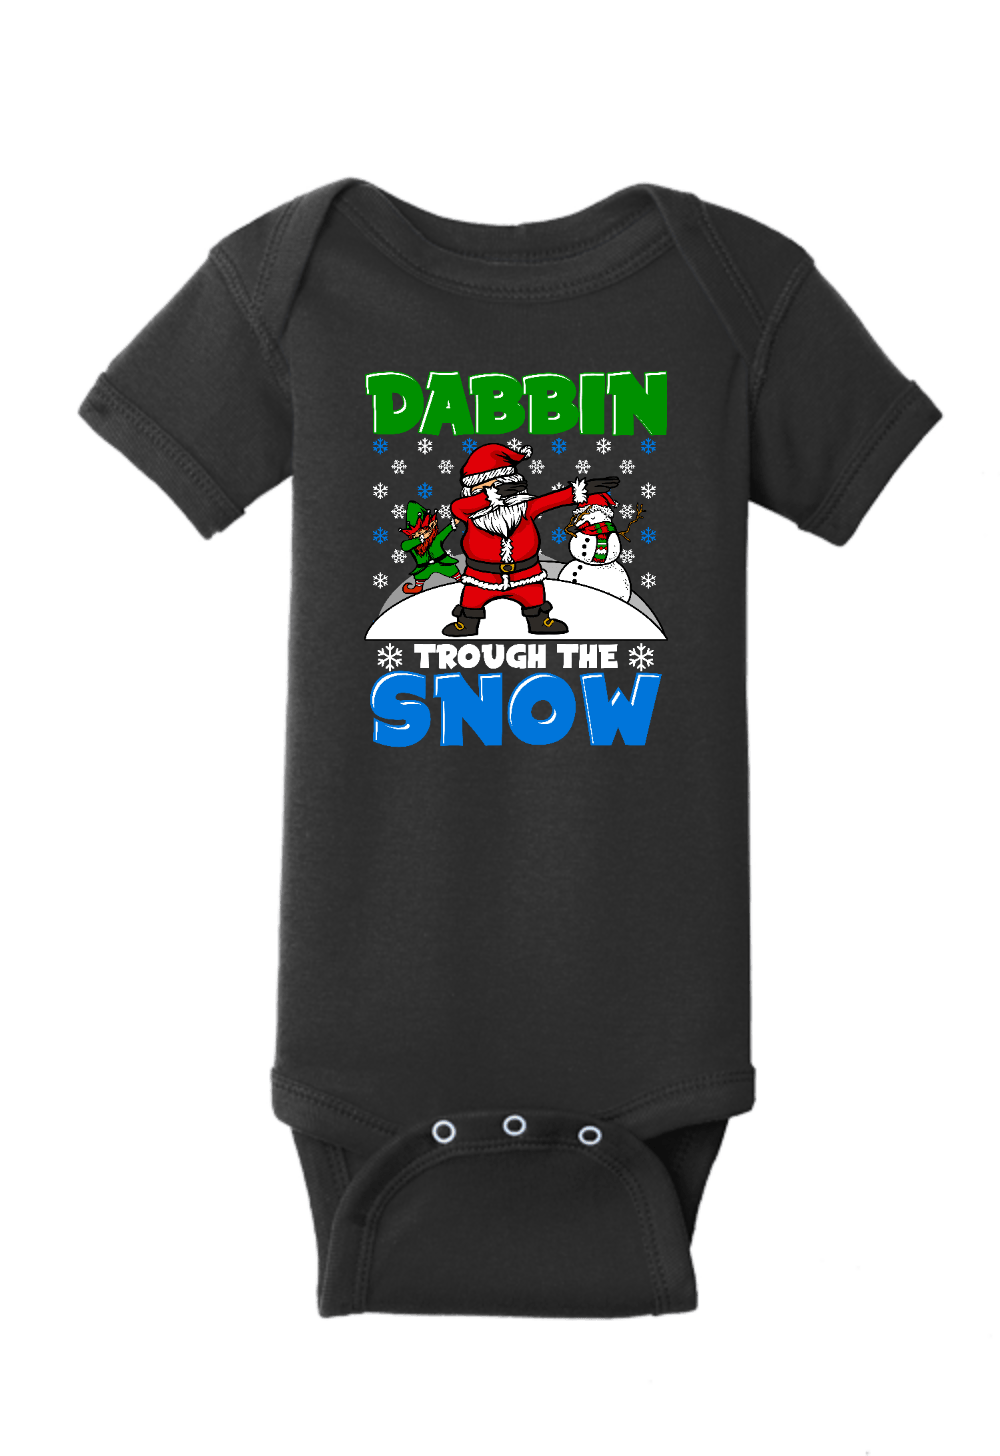 Dabbin thru the Snow Christmas Onesie